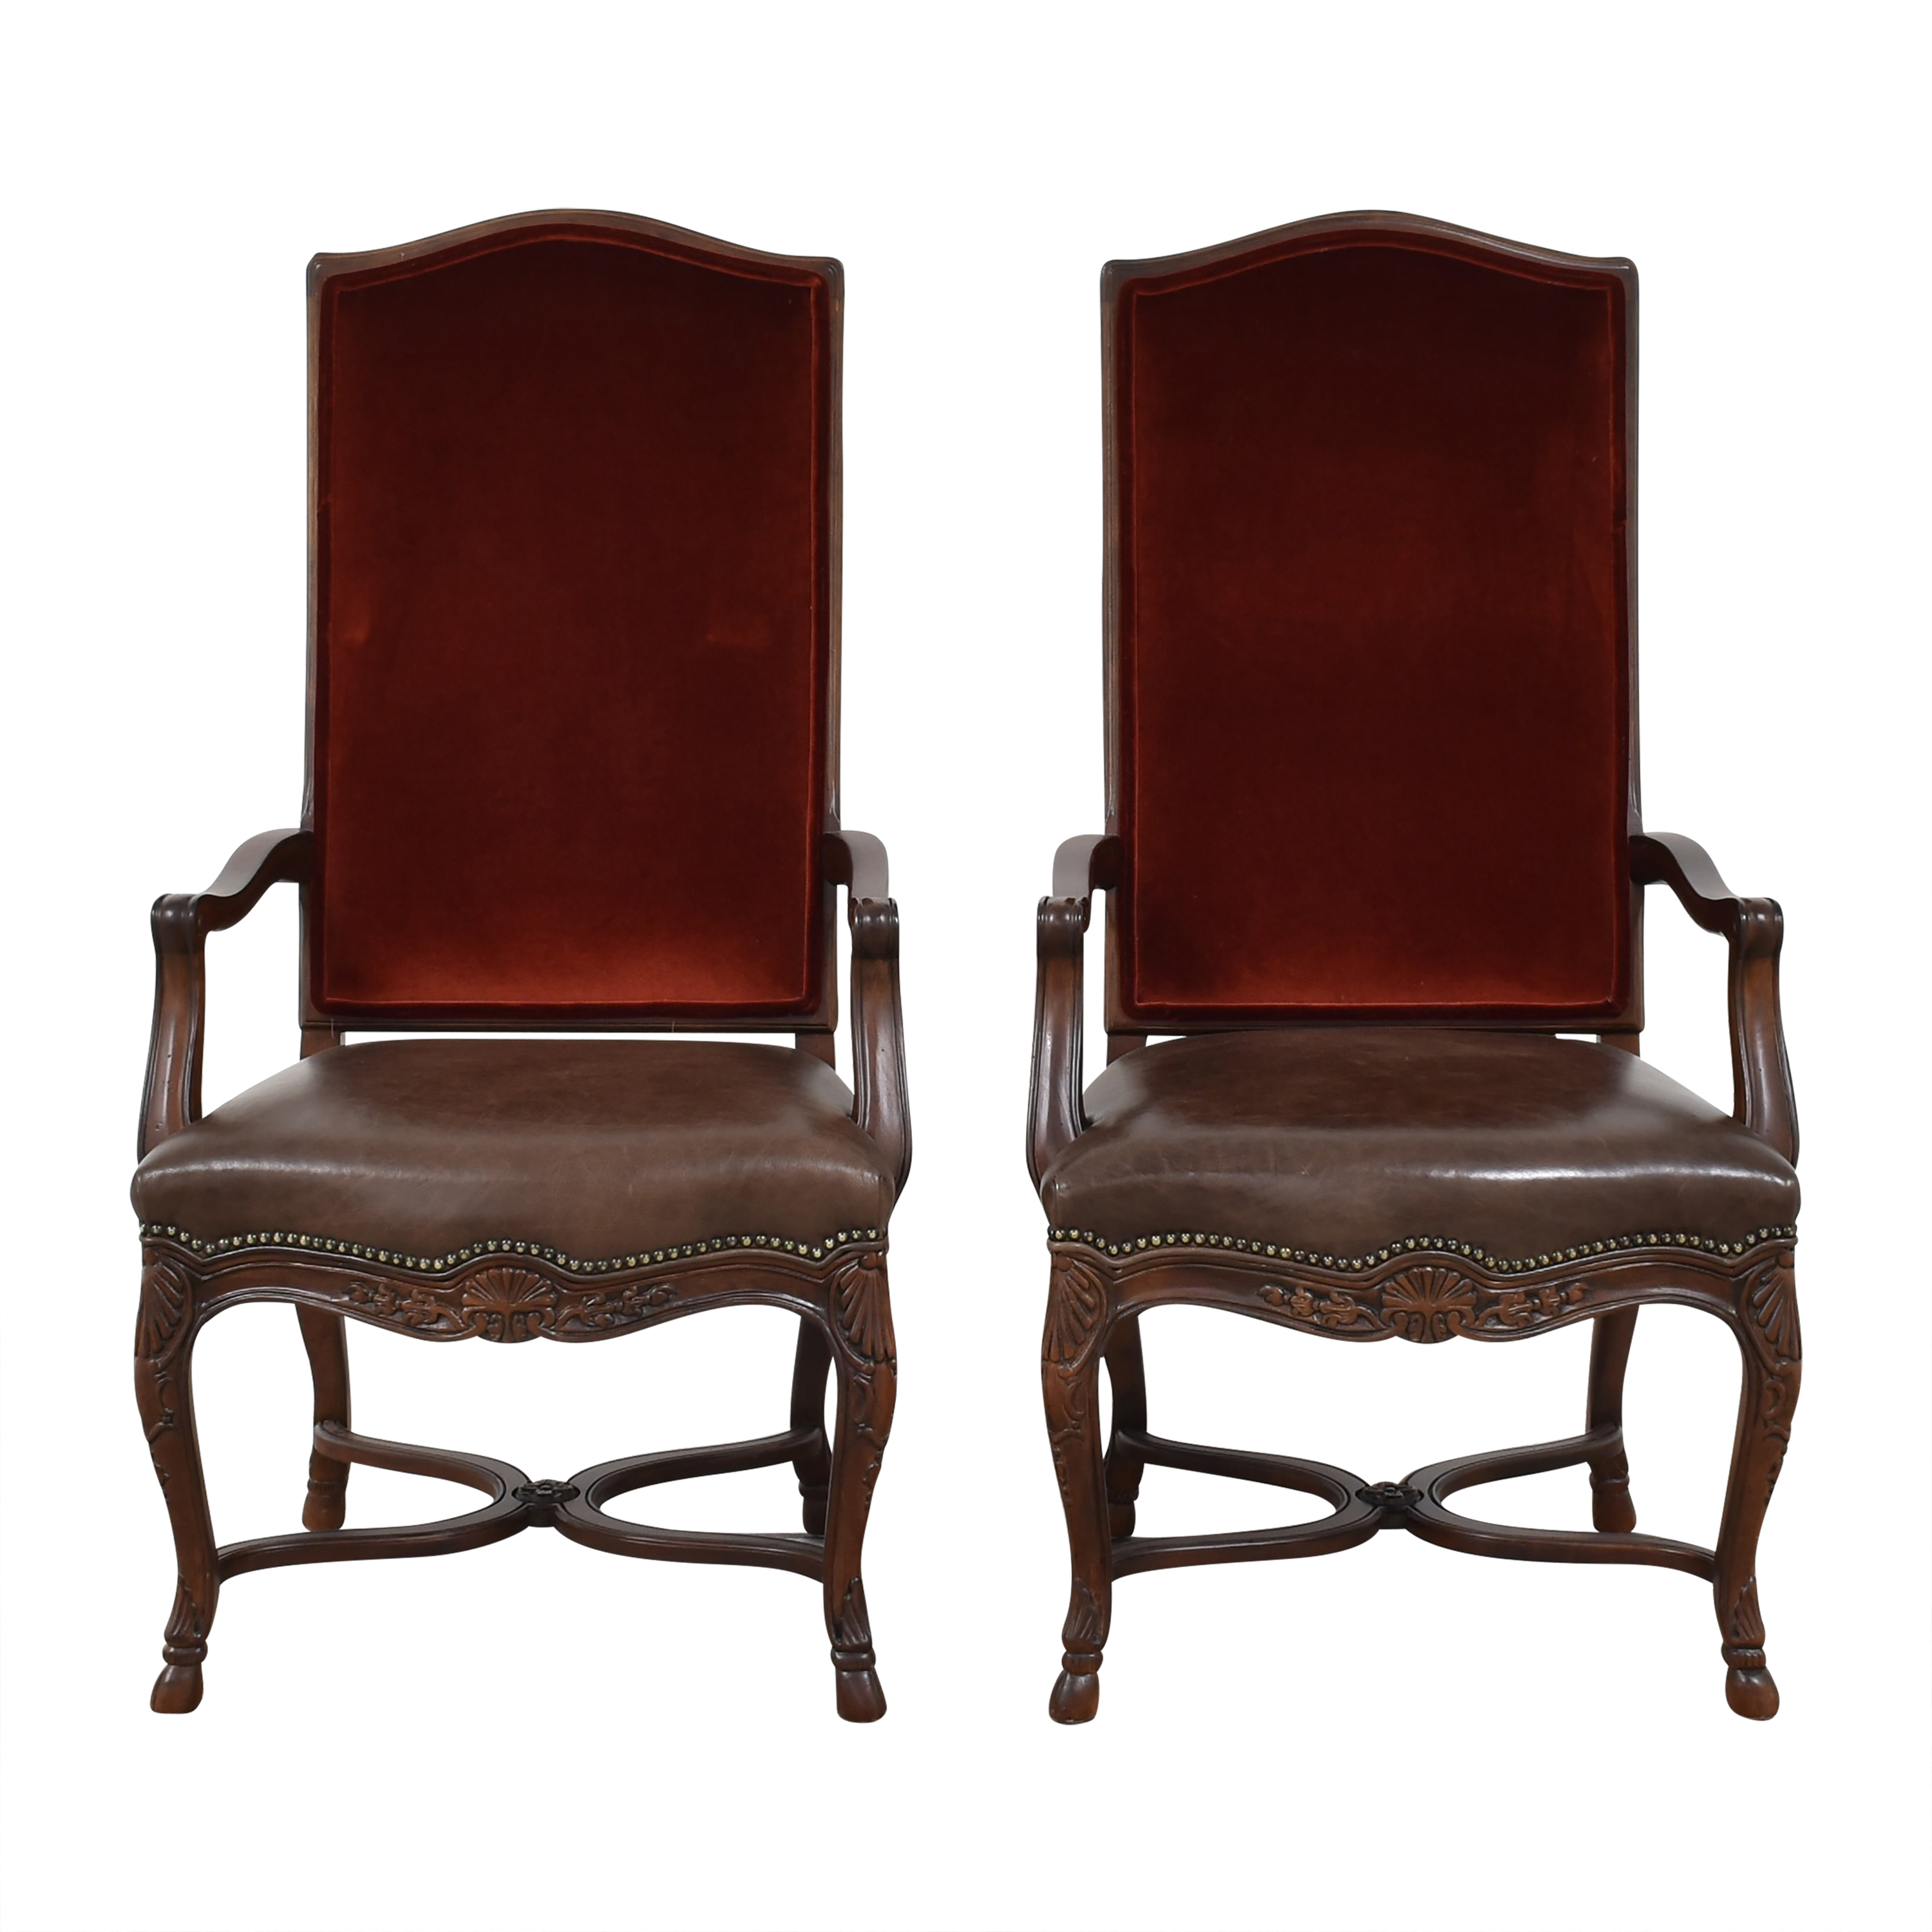 Safavieh Safavieh Hooved French Arm Chairs discount